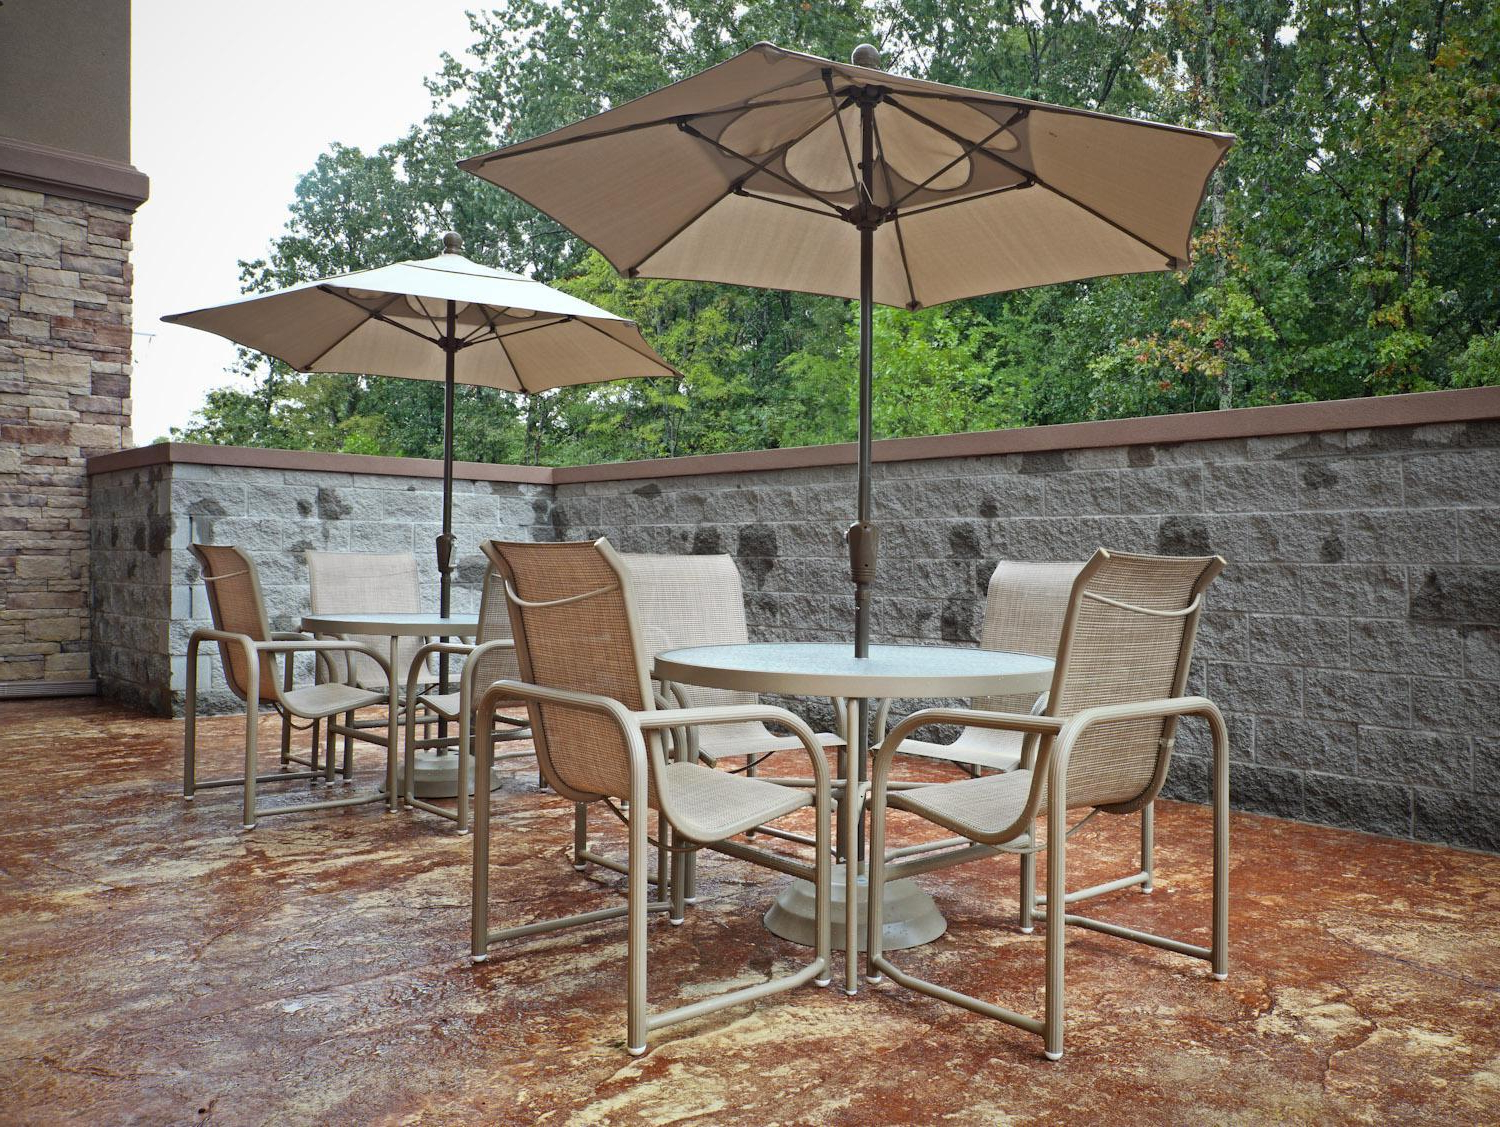 Lonoke Patio Rectangular Market Umbrellas Throughout Recent Hotels In College Station, Arkansas (View 18 of 20)